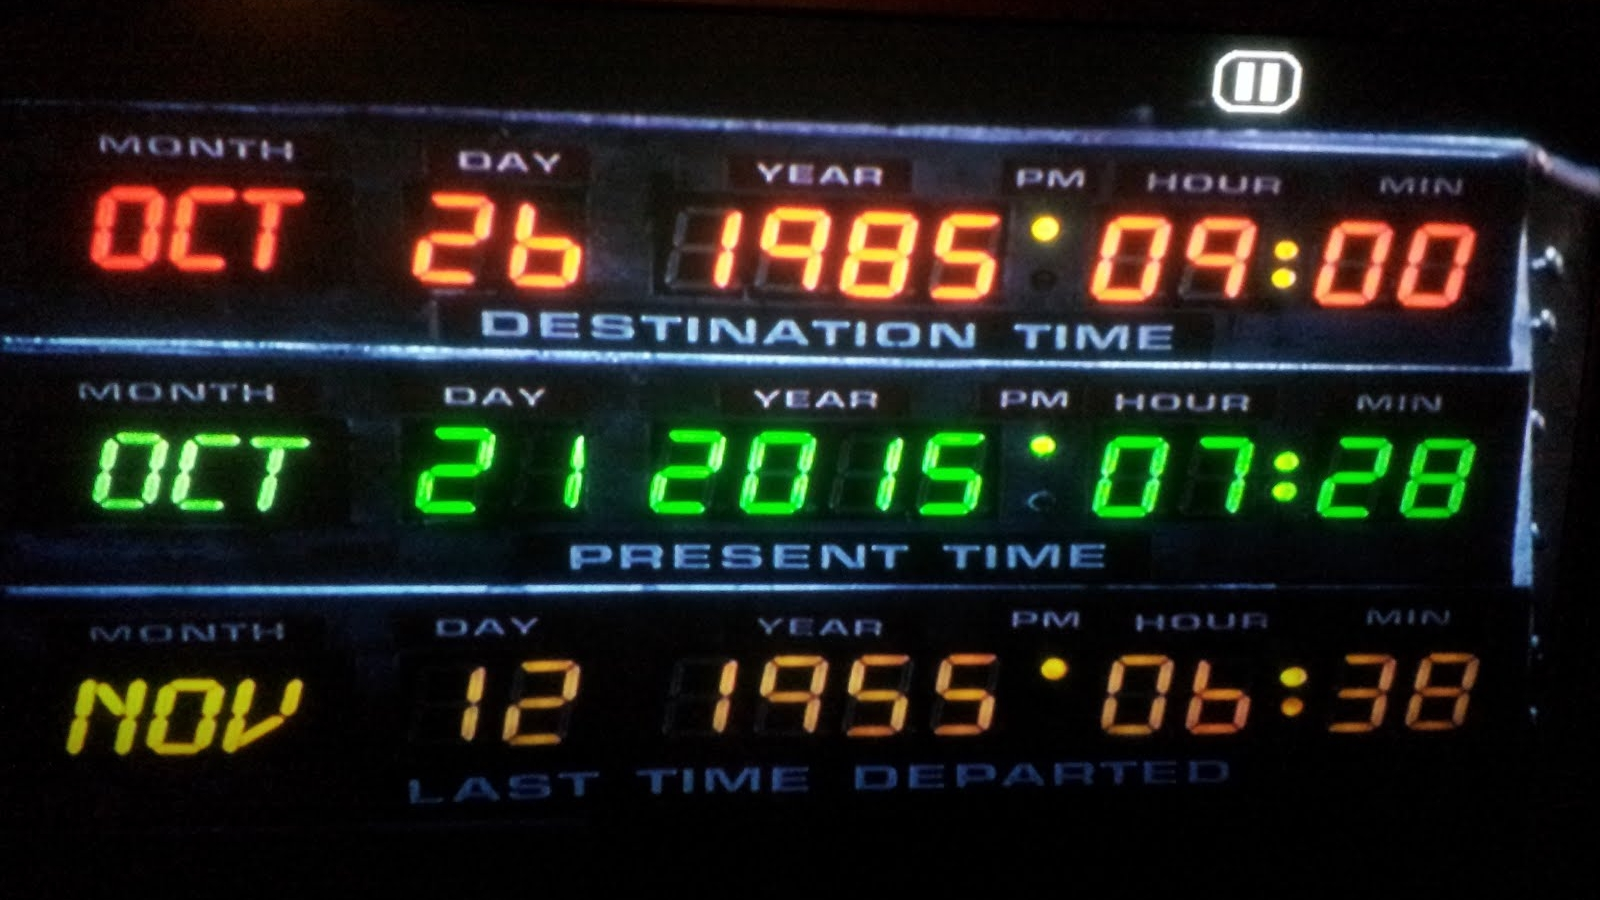 back to future real date october 21 2015